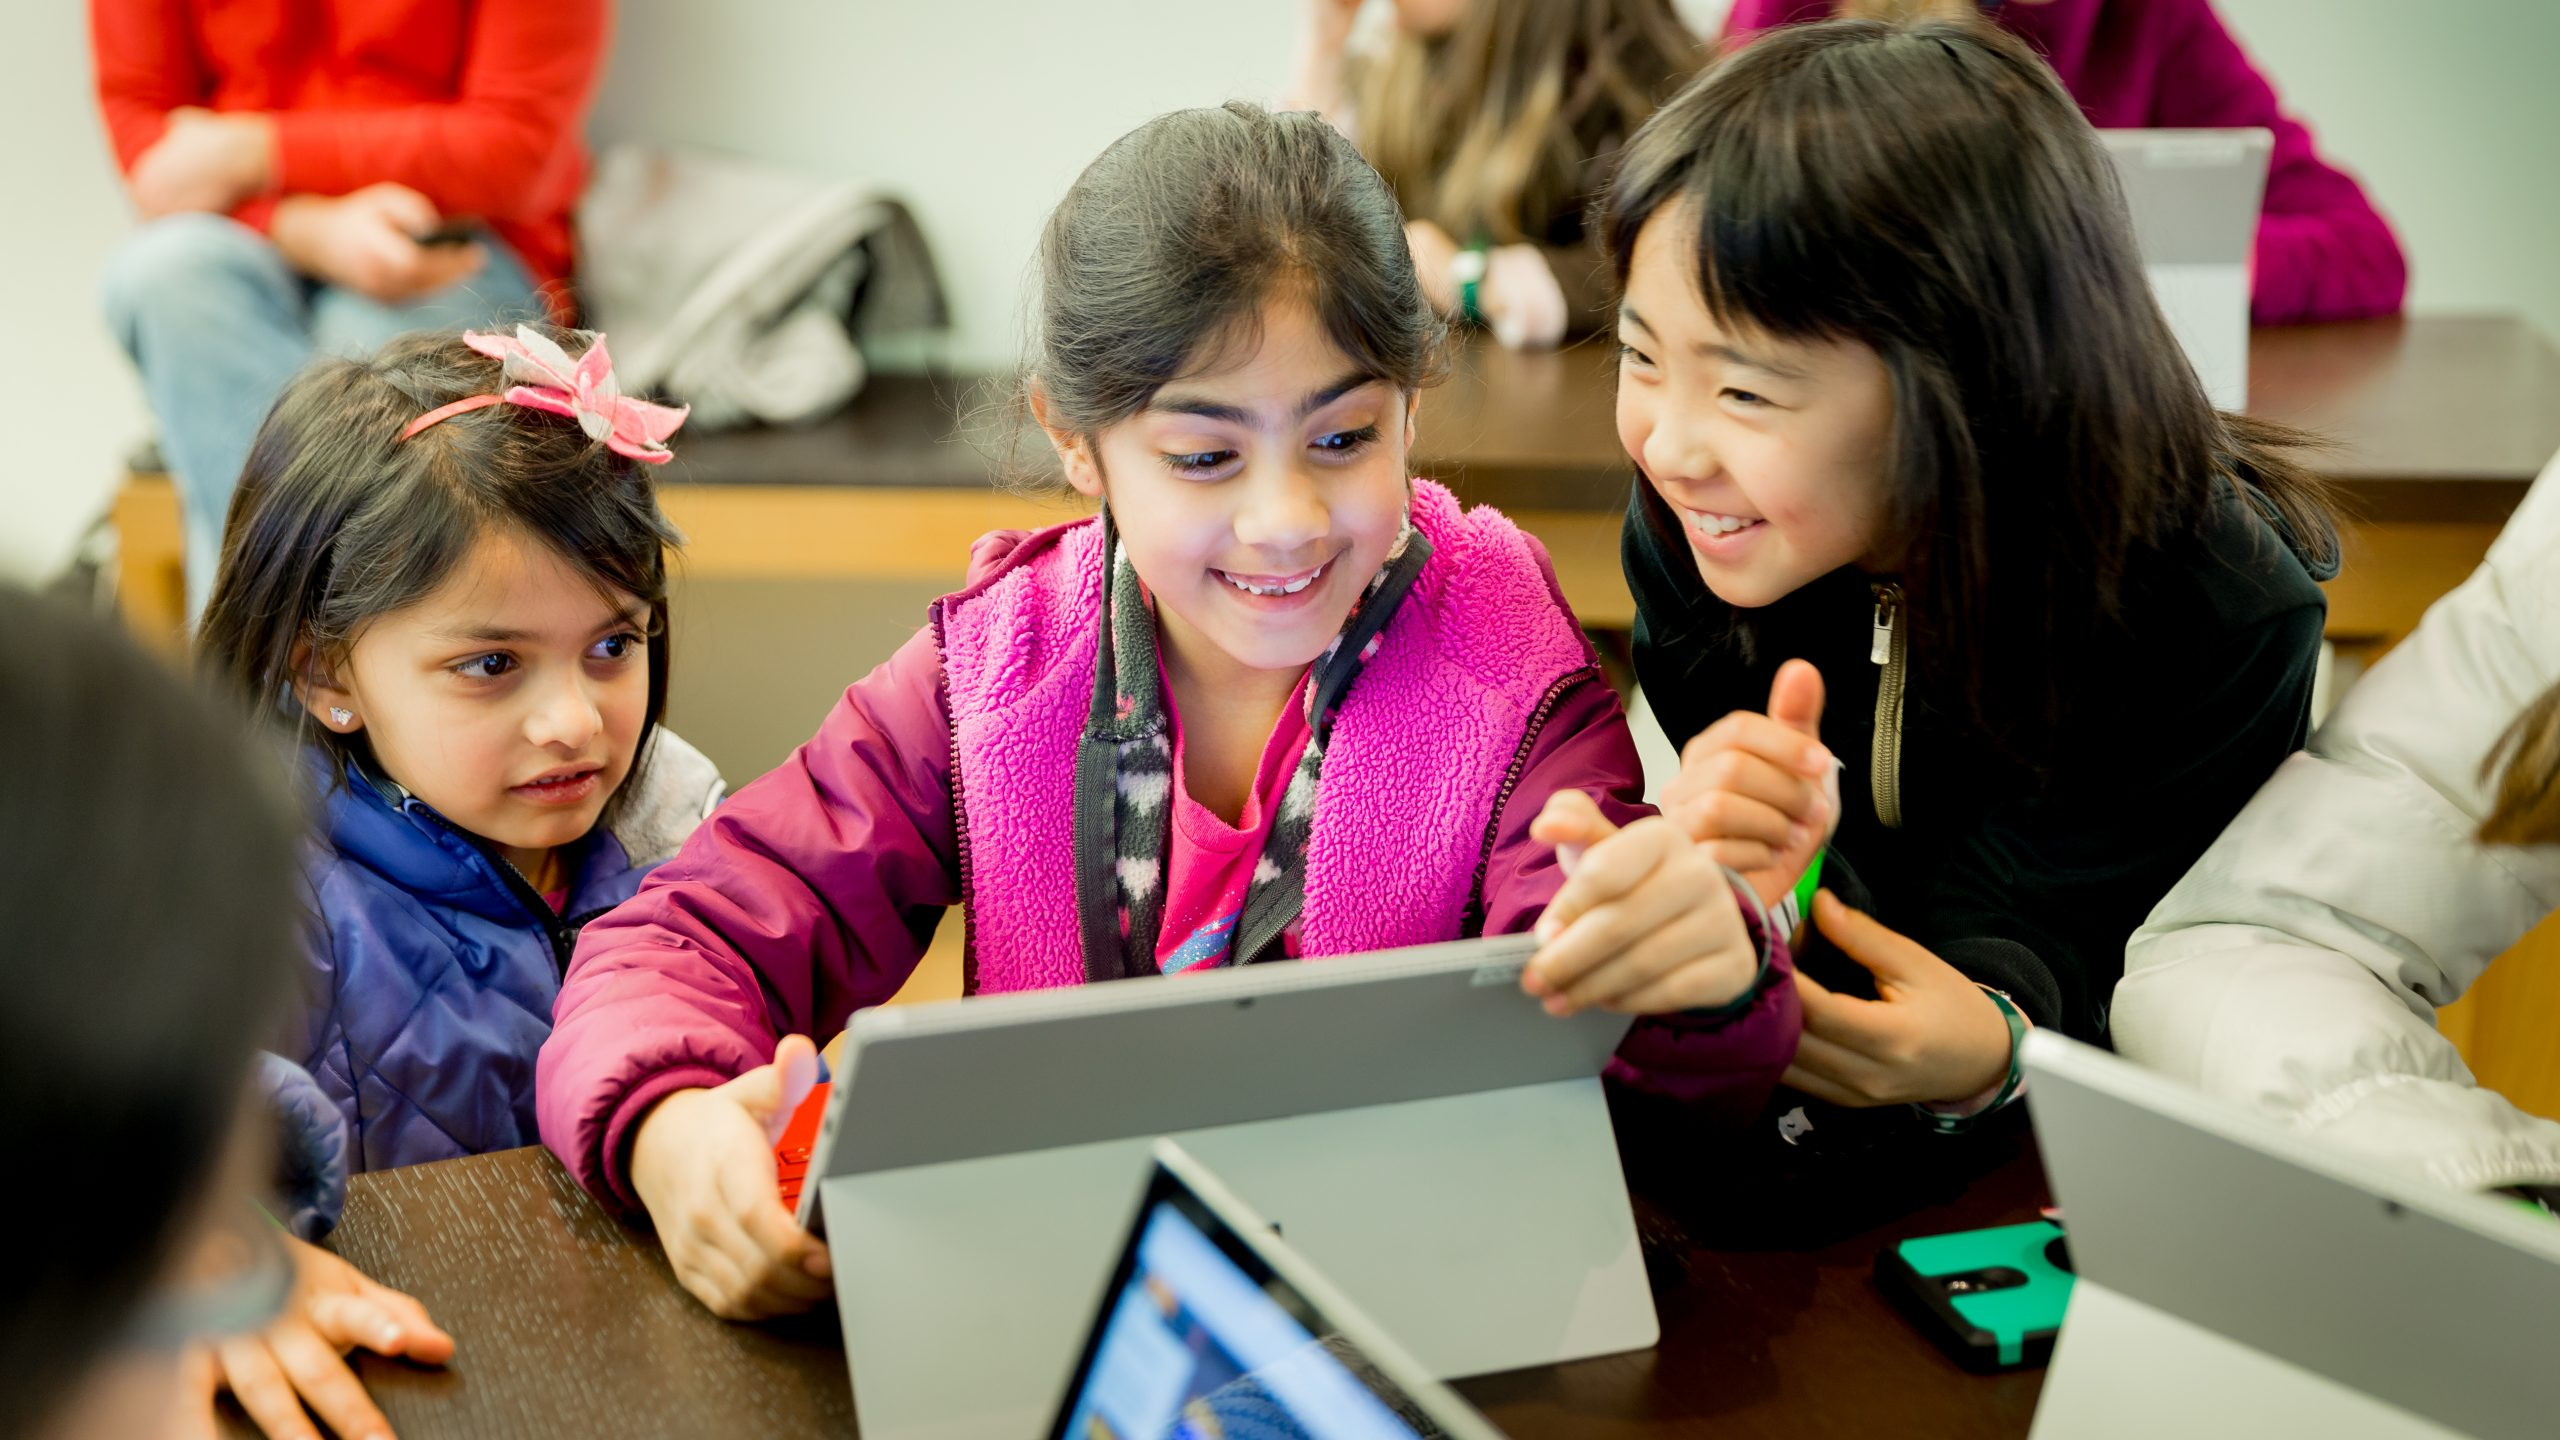 Microsoft & National Geographic hosting STEM workshops across the U.S.<br> Photograph by Scott Eklund/Red Box Pictures